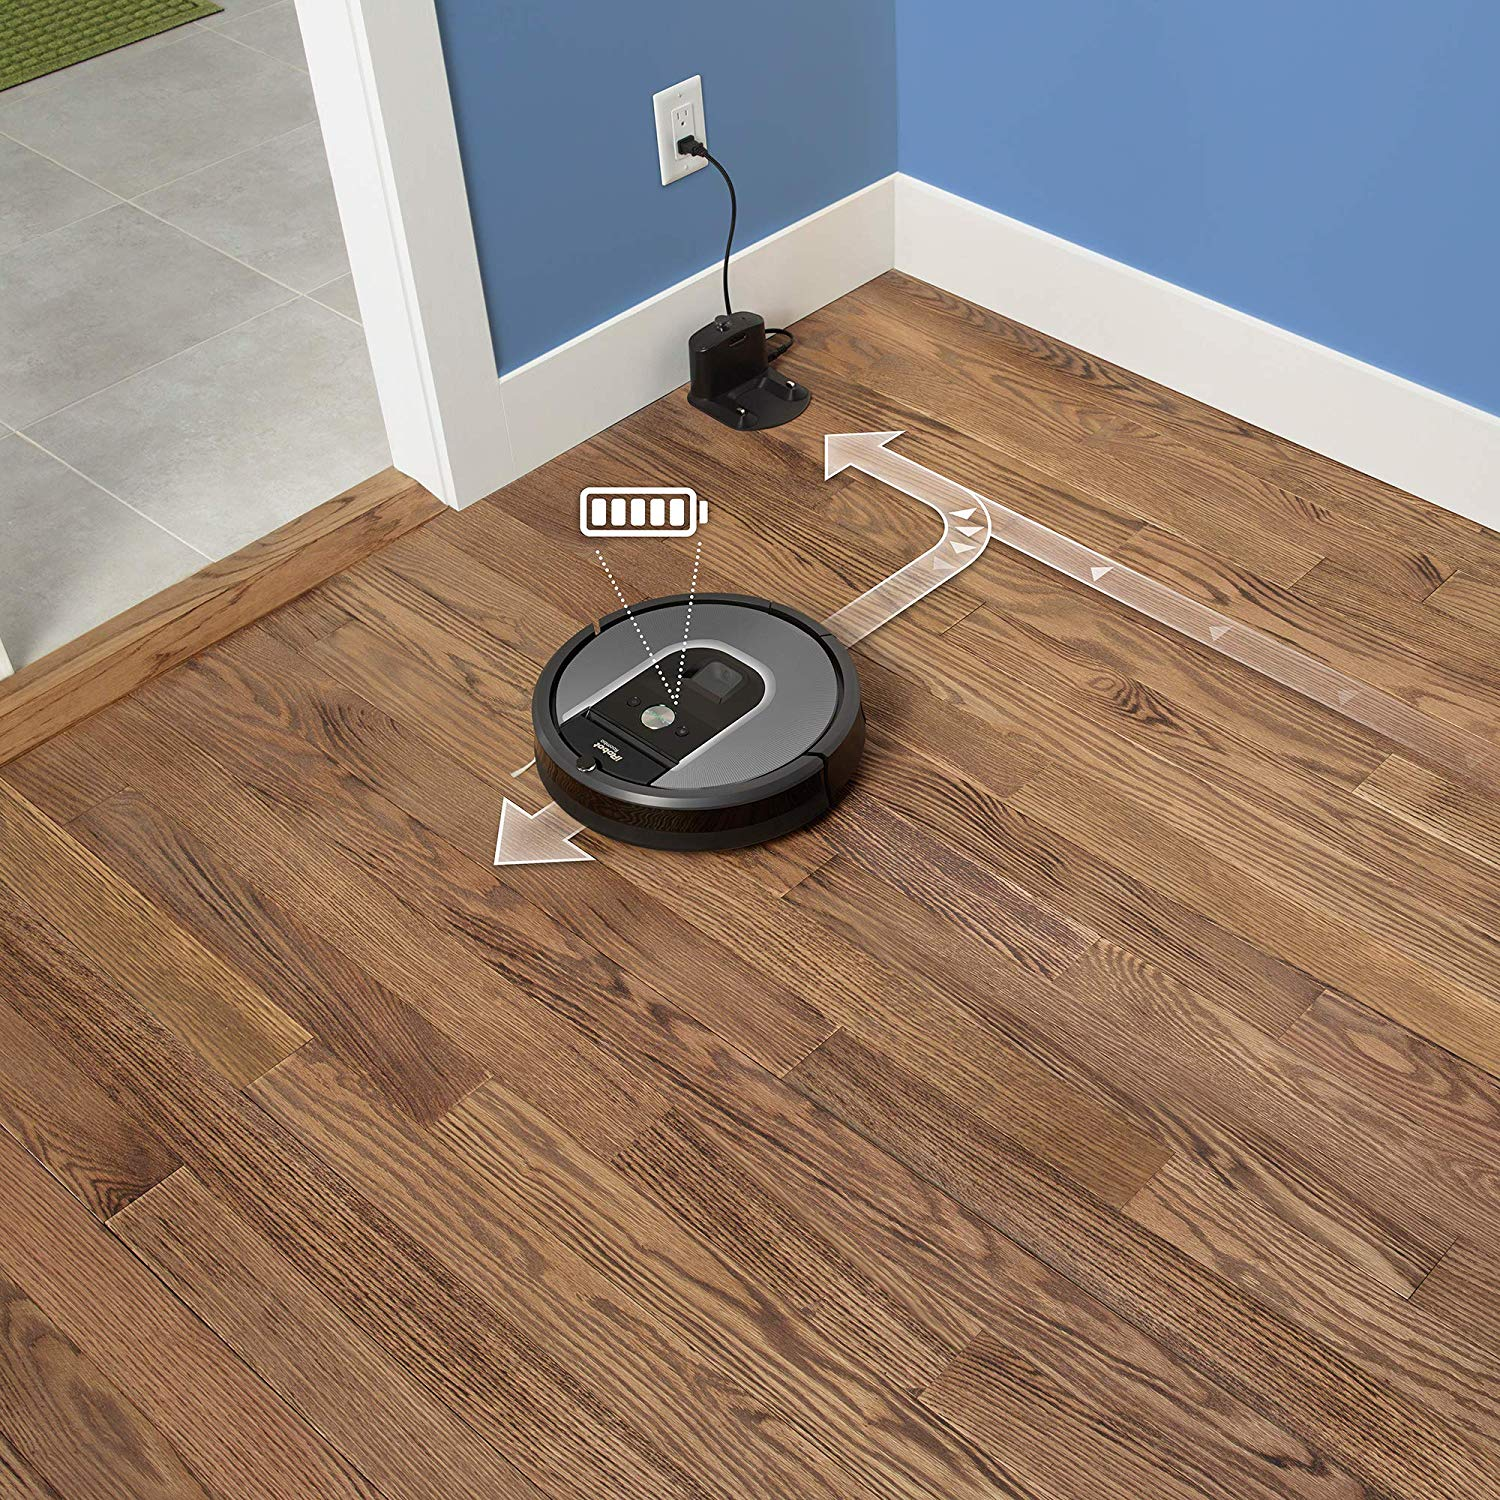 roomba going to charging platform